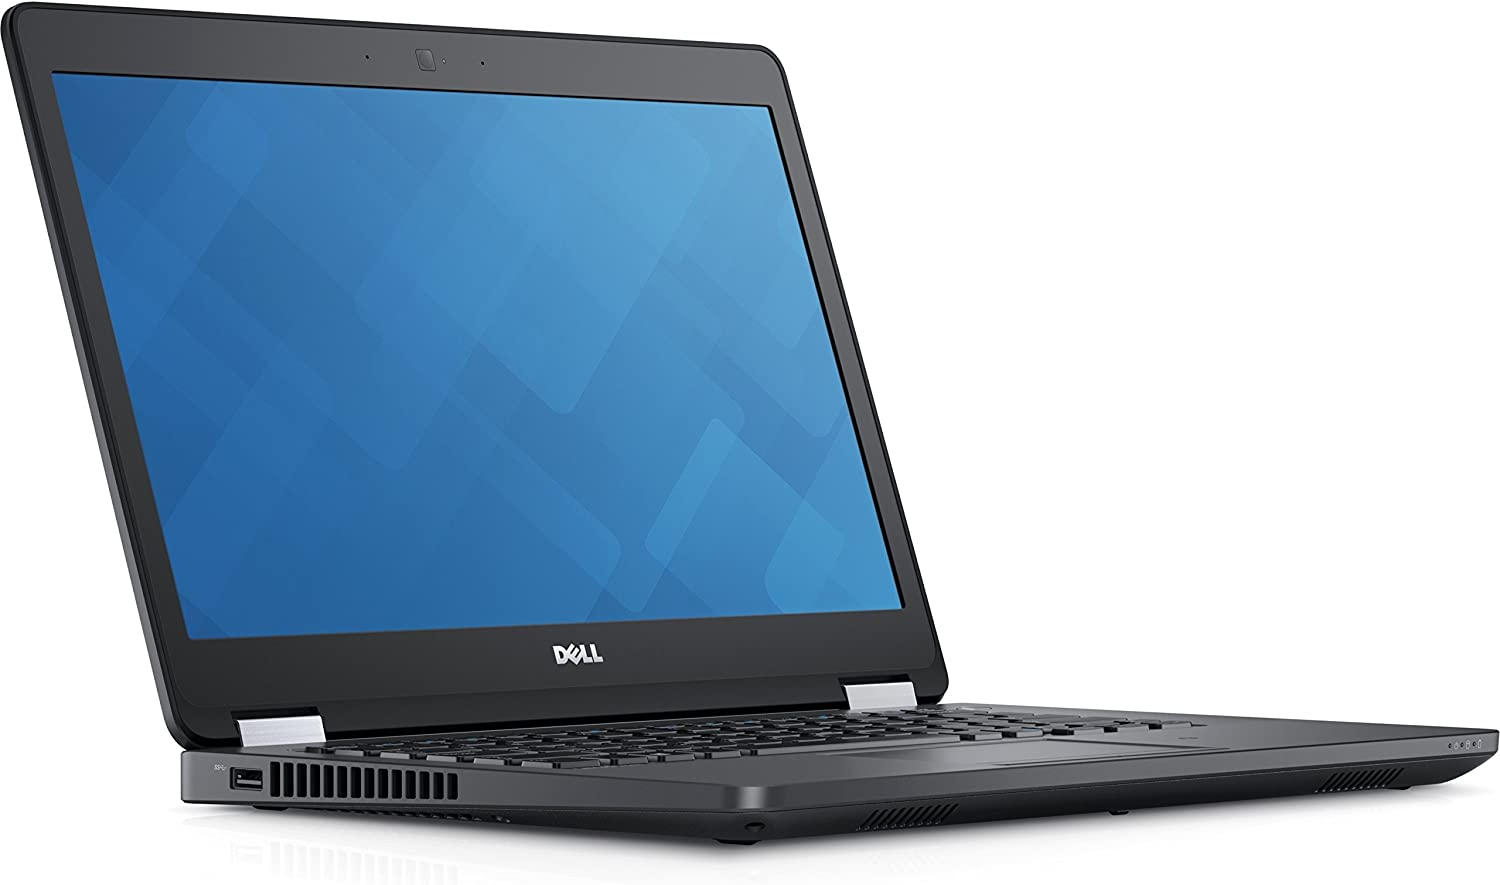 "Dell Latitude E5470 14"" Laptop - 0KR4W (14"" HD Display, i5-6300U 2.40GHz, 8GB DDR4 RAM, 128GB SSD, Bluetooth, Windows 7/10 64)"